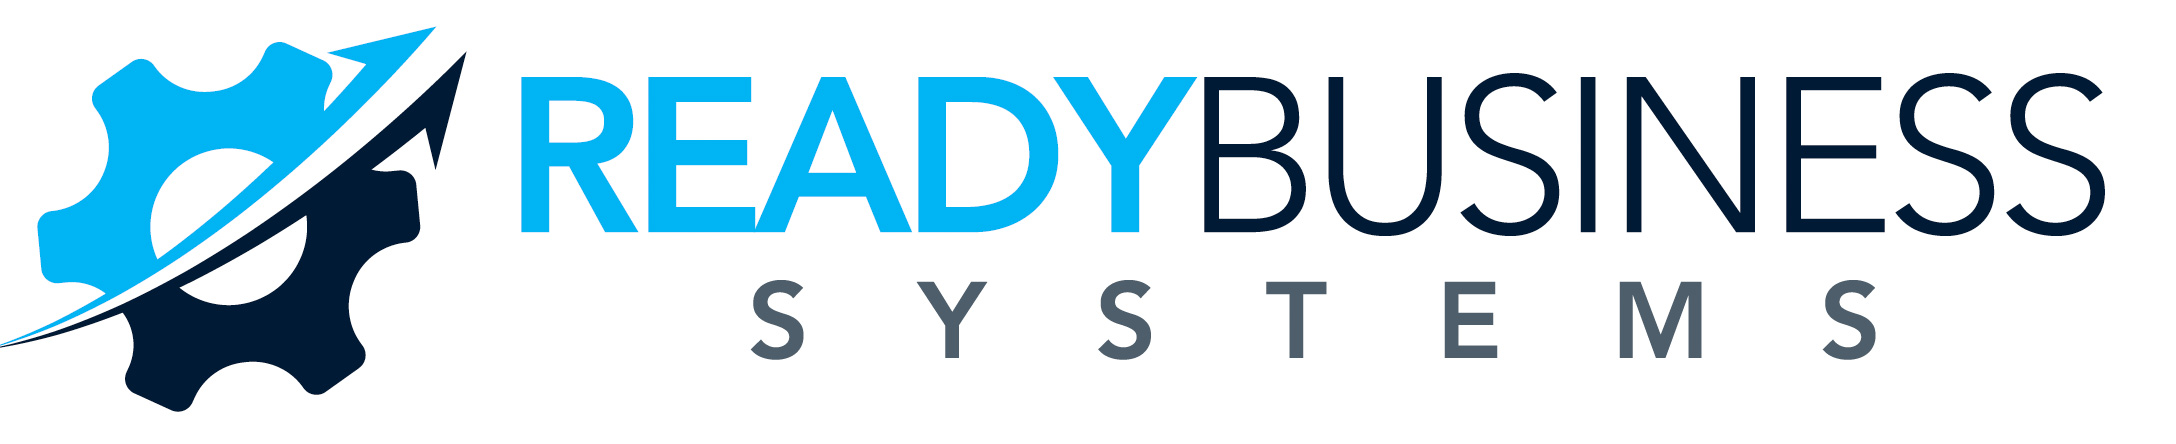 Ready Business Systems